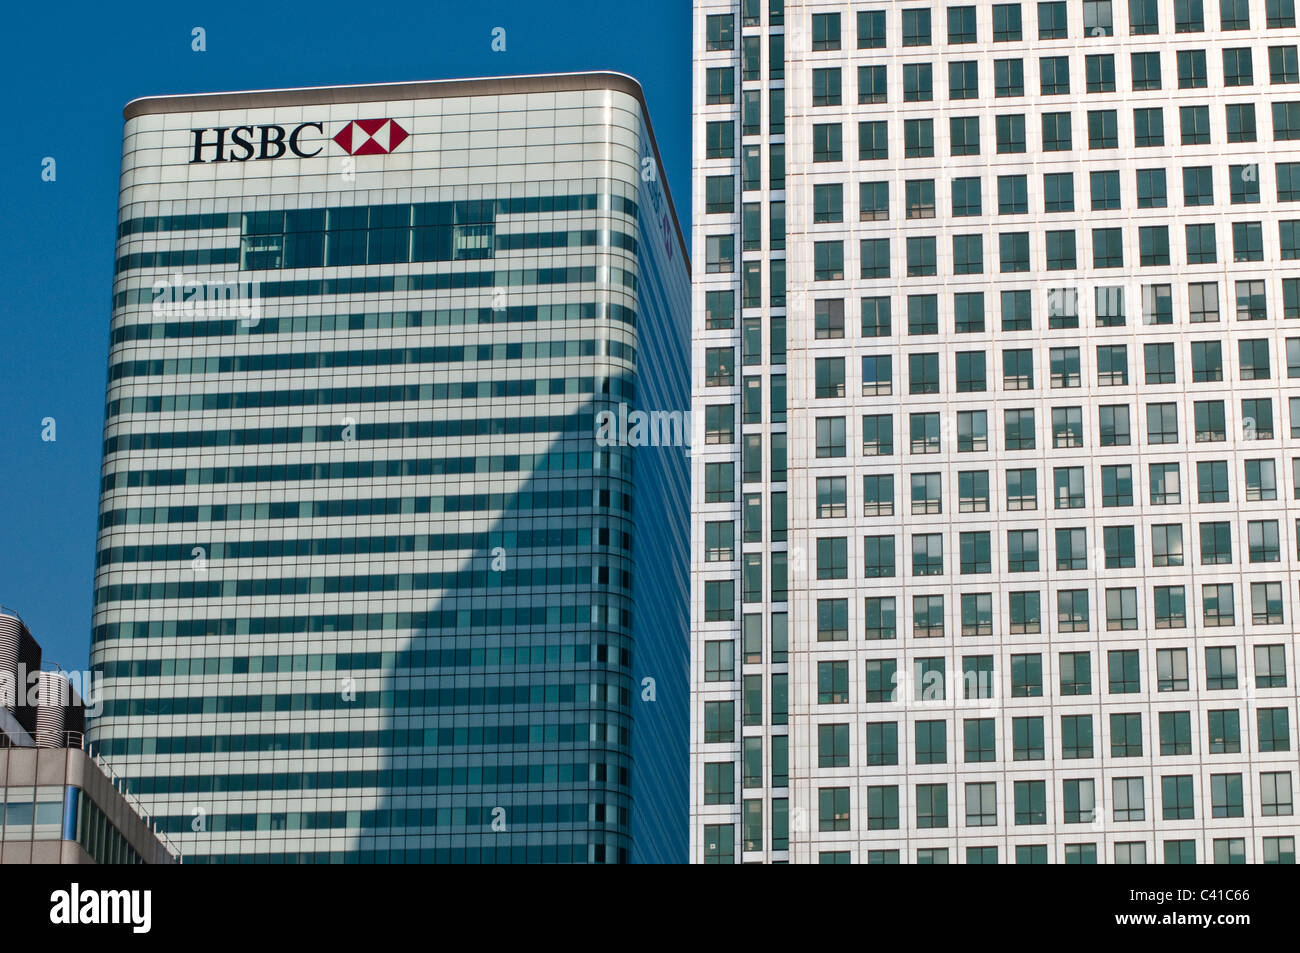 Detail of One Canada Square skyscraper and HSBC bank, Canary Wharf, London, UK - Stock Image